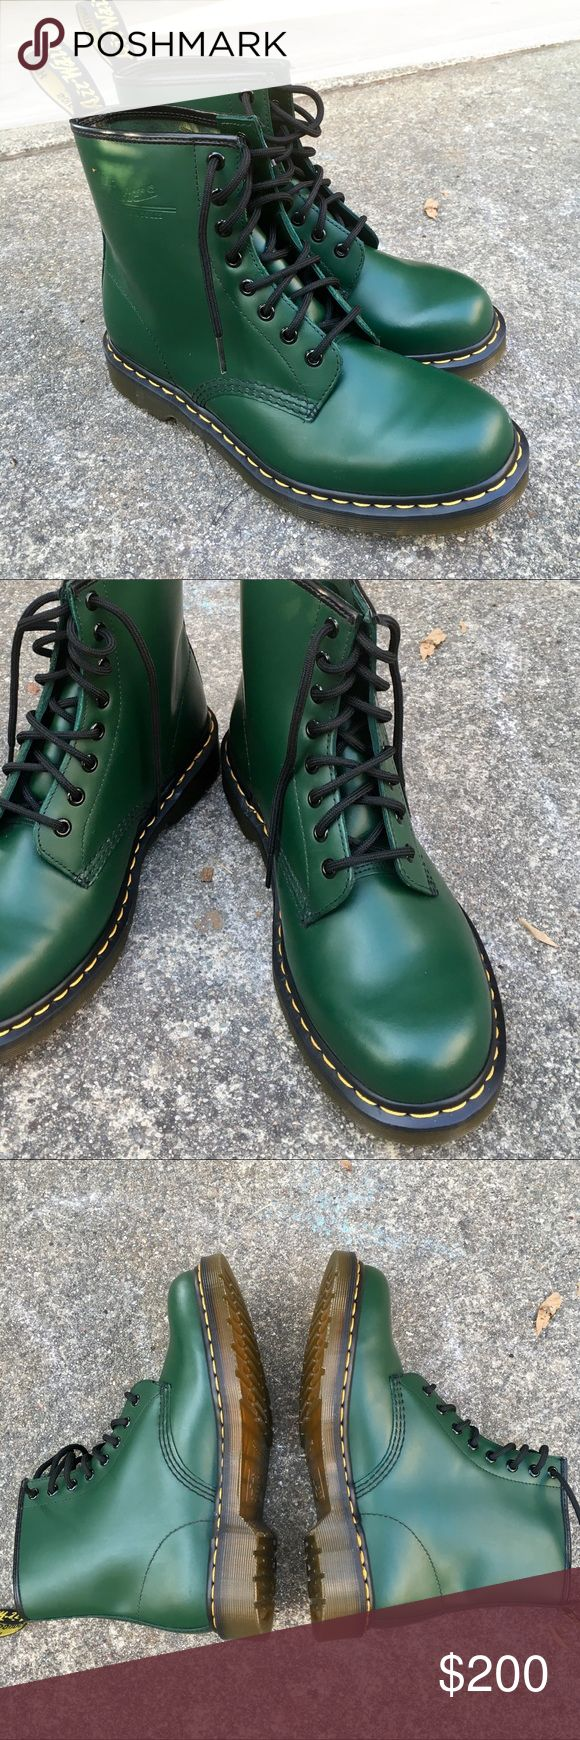 Gorgeous Green Dr. Martens Boots 41 These beautiful boots have never been worn; there is not a scratch on them, and the soles are perfectly clean. My husband bought them in London and never wore because they are too small for him. They are a size 41. Men's 8 and women's 10. These are definitely unisex. The color is such a gorgeous forest green. Posh says 41 translates to 11. I don't think that's correct. Best if you know your European sizing. Also I can measure them for you. Dr. Martens…